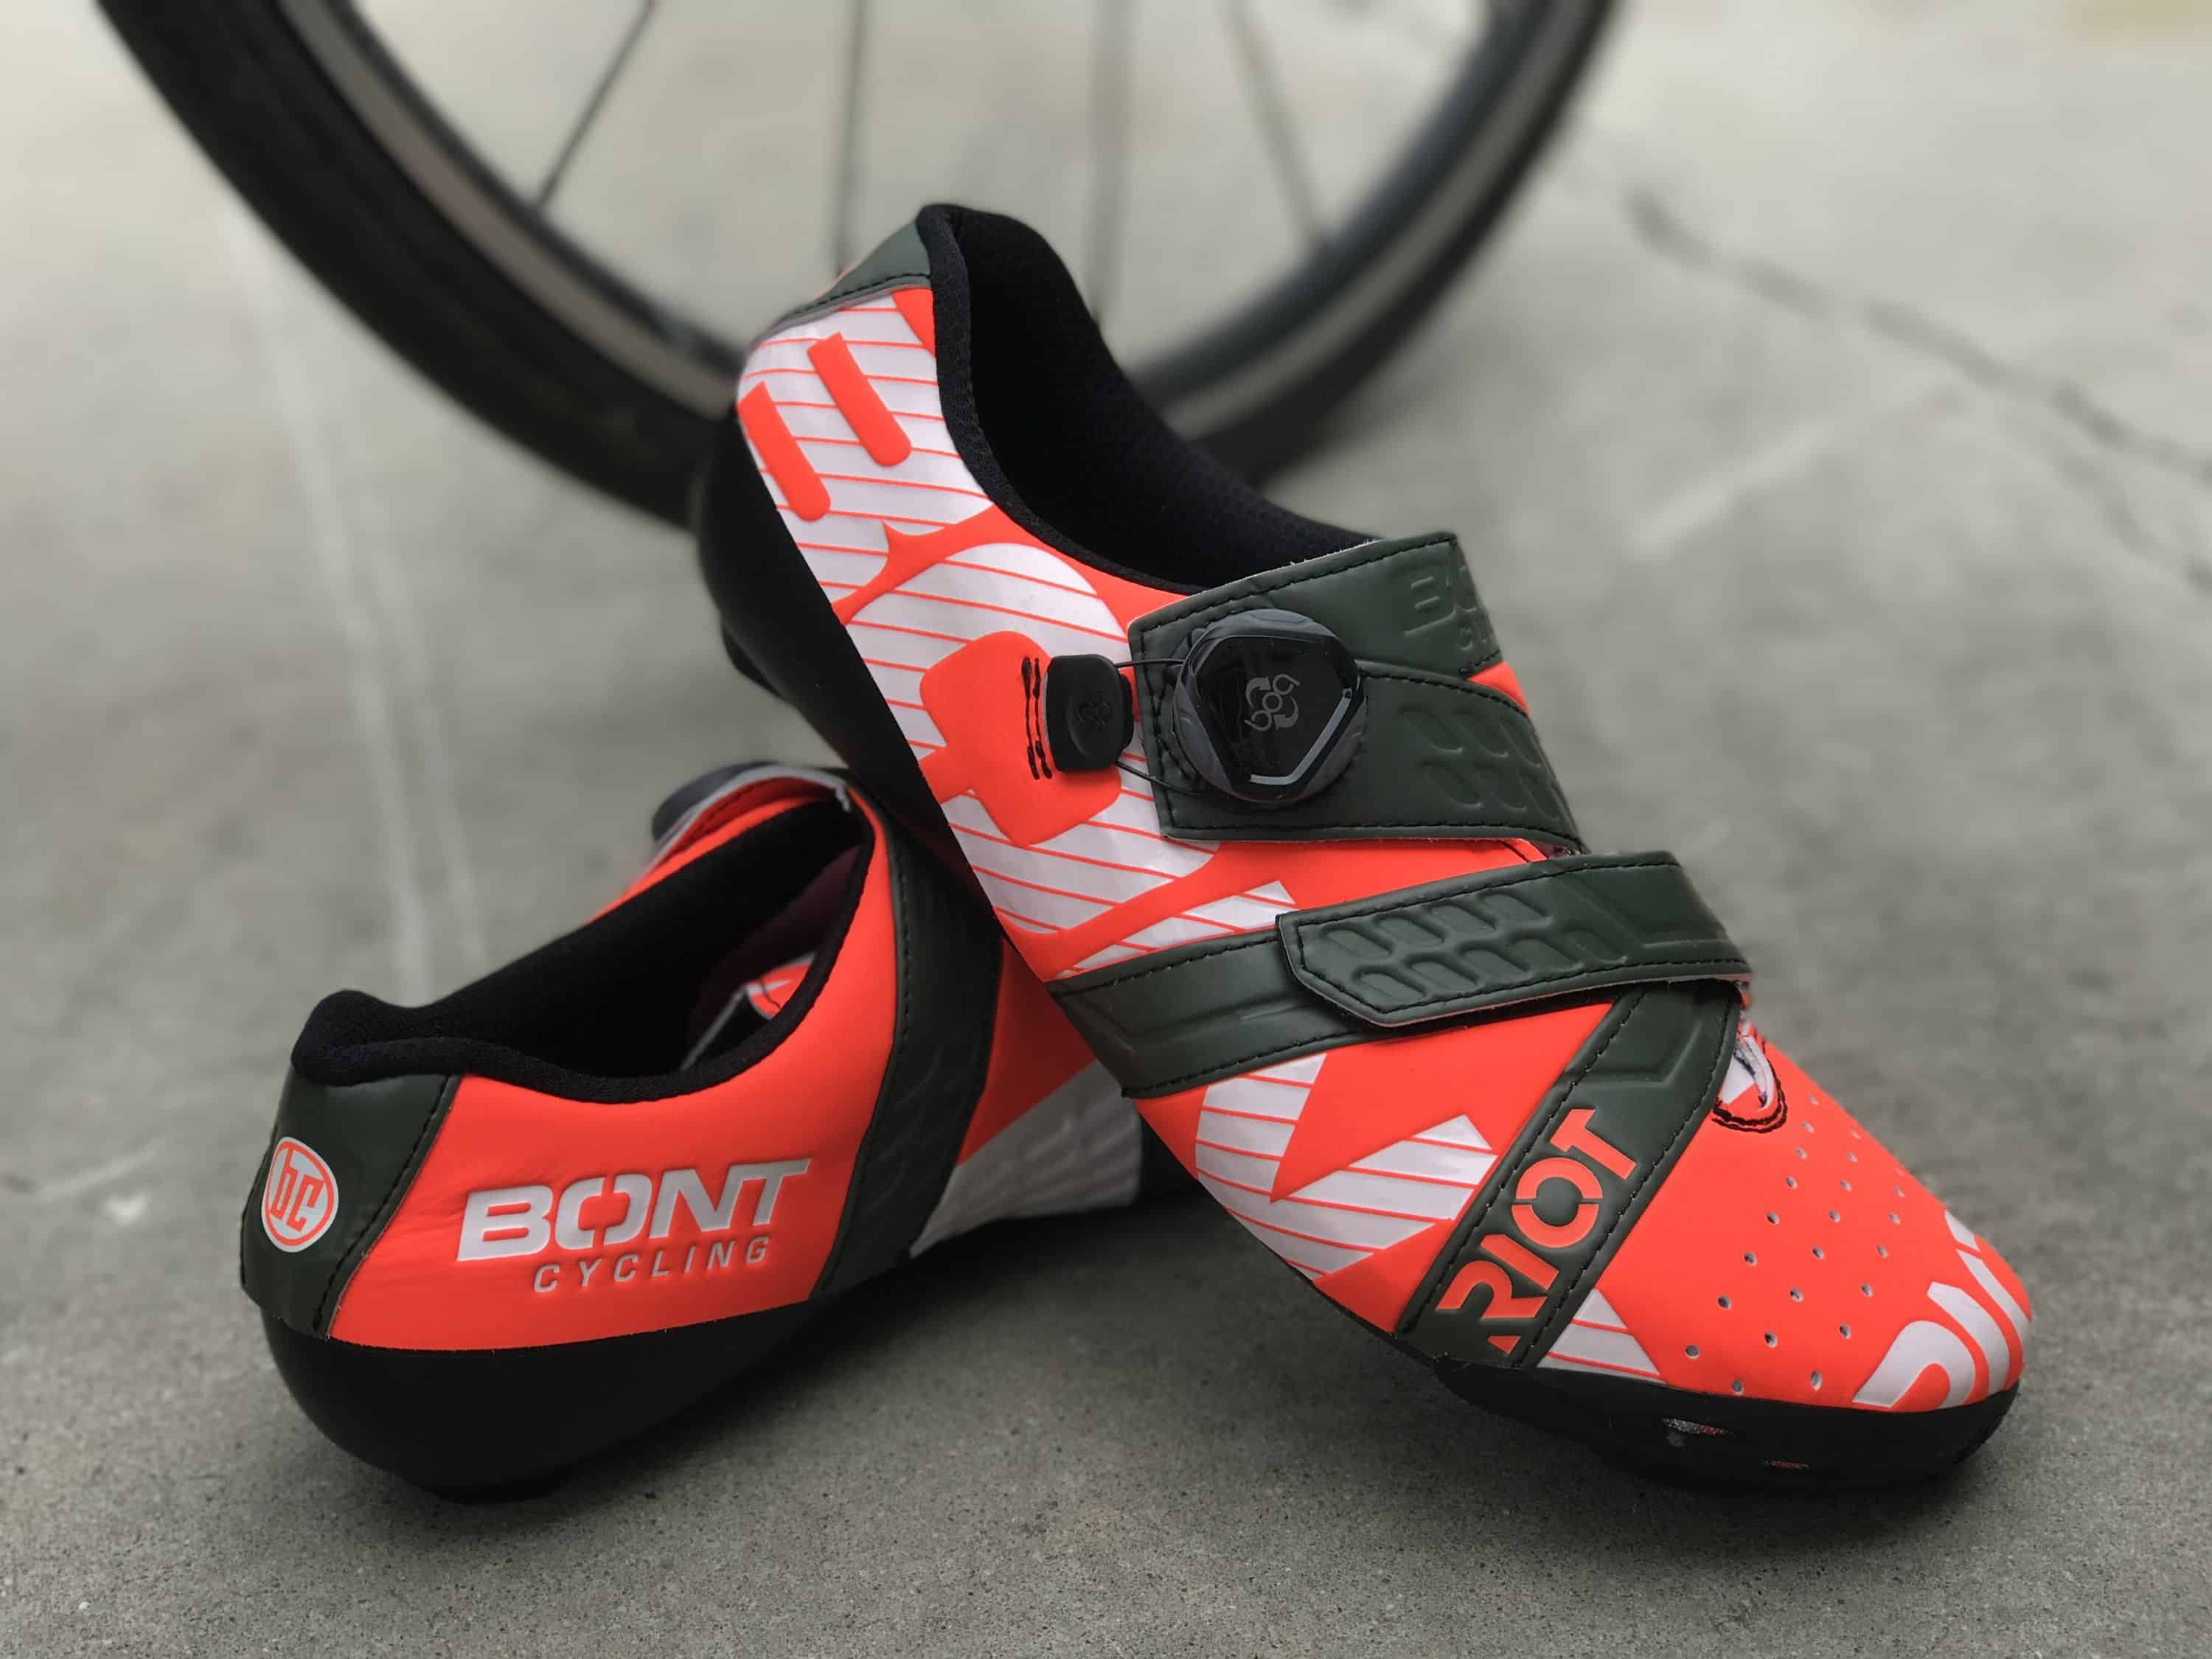 what the importance of having the right cycling pedals are, and some things to consider before purchasing your first cycling shoes.